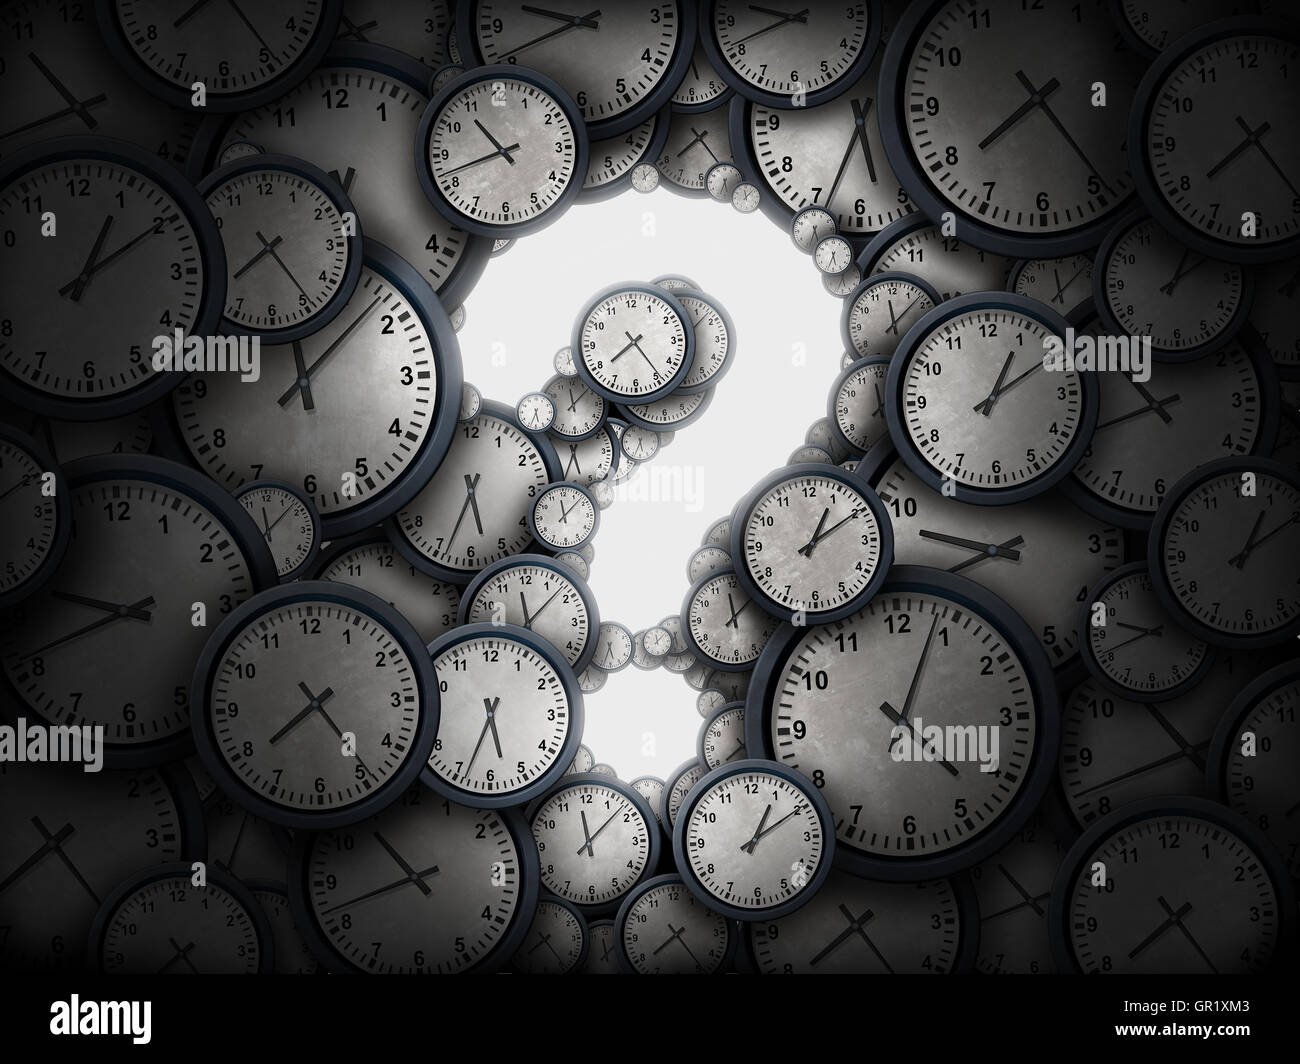 Notion du temps ou de l'entreprise question annexe questions symbole comme un groupe d'horloges en forme Photo Stock